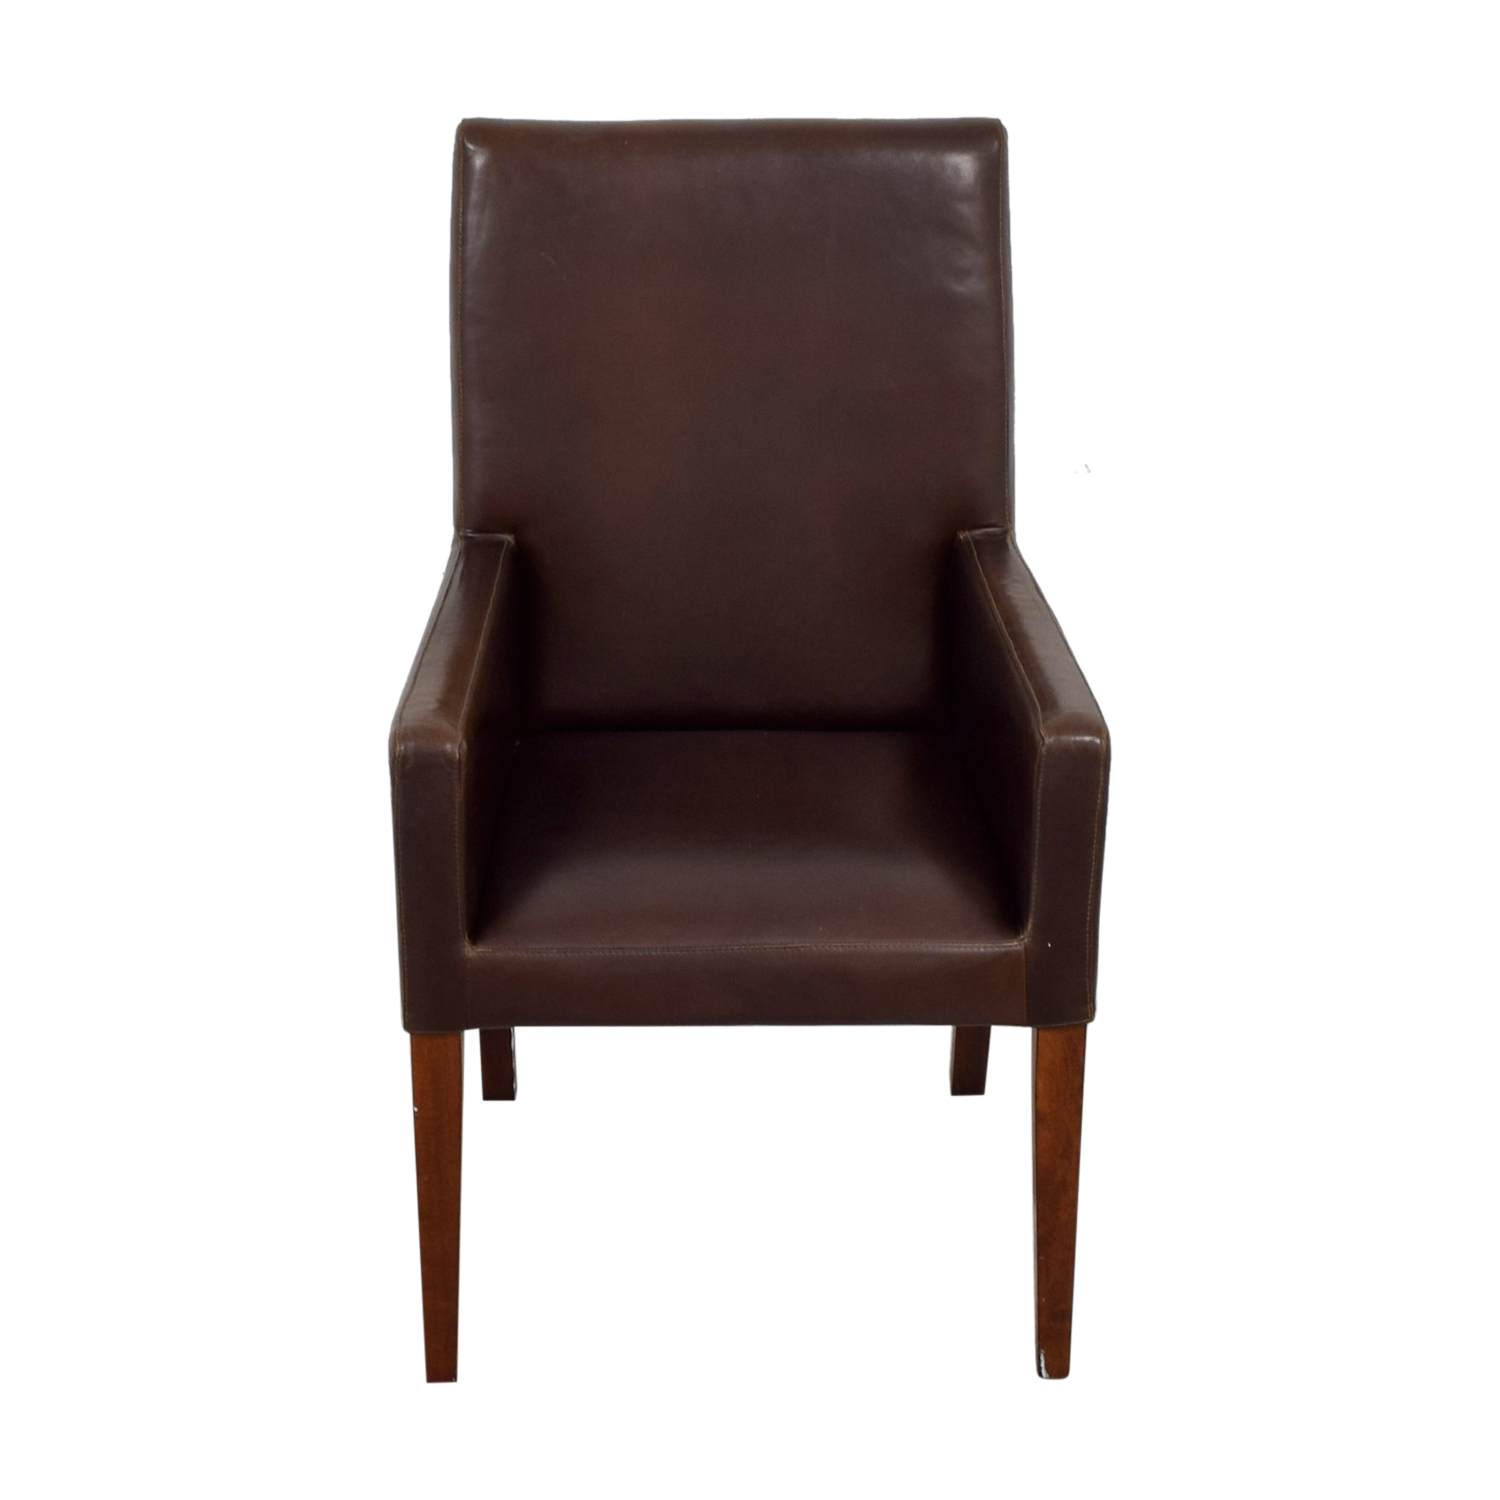 90 Off Pottery Barn Pottery Barn Brown Leather Chair